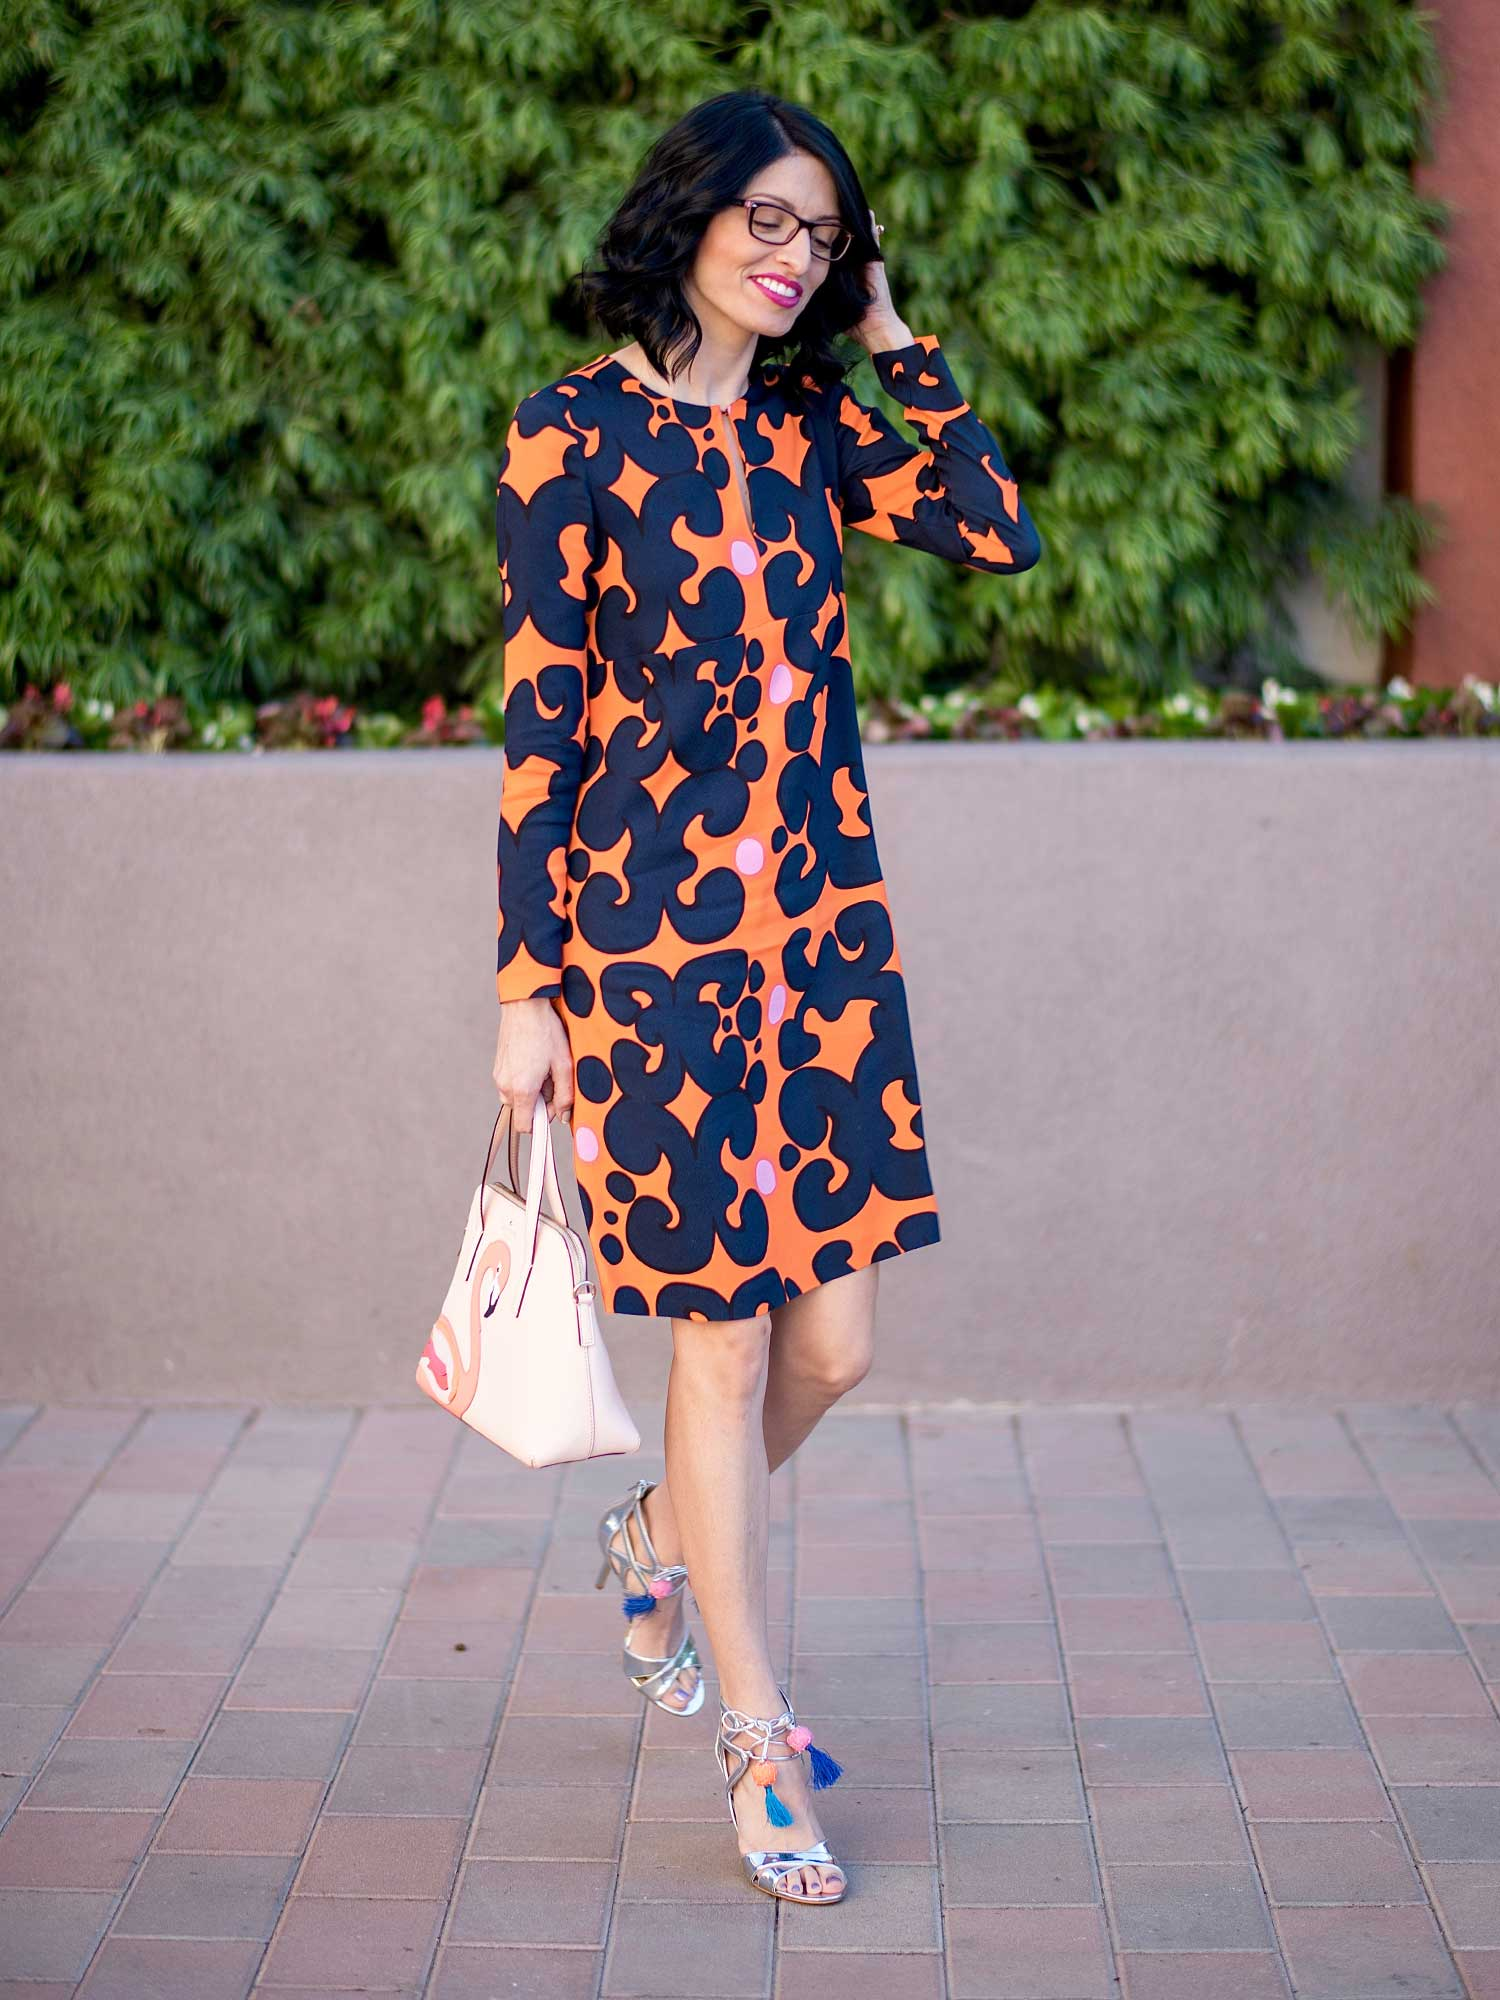 jenna-pilant-lucky-little-mustardseed-san-diego-fashion-blogger-how-to-wear-orange-in-fall-and-not-look-like-a-pumpkin-3